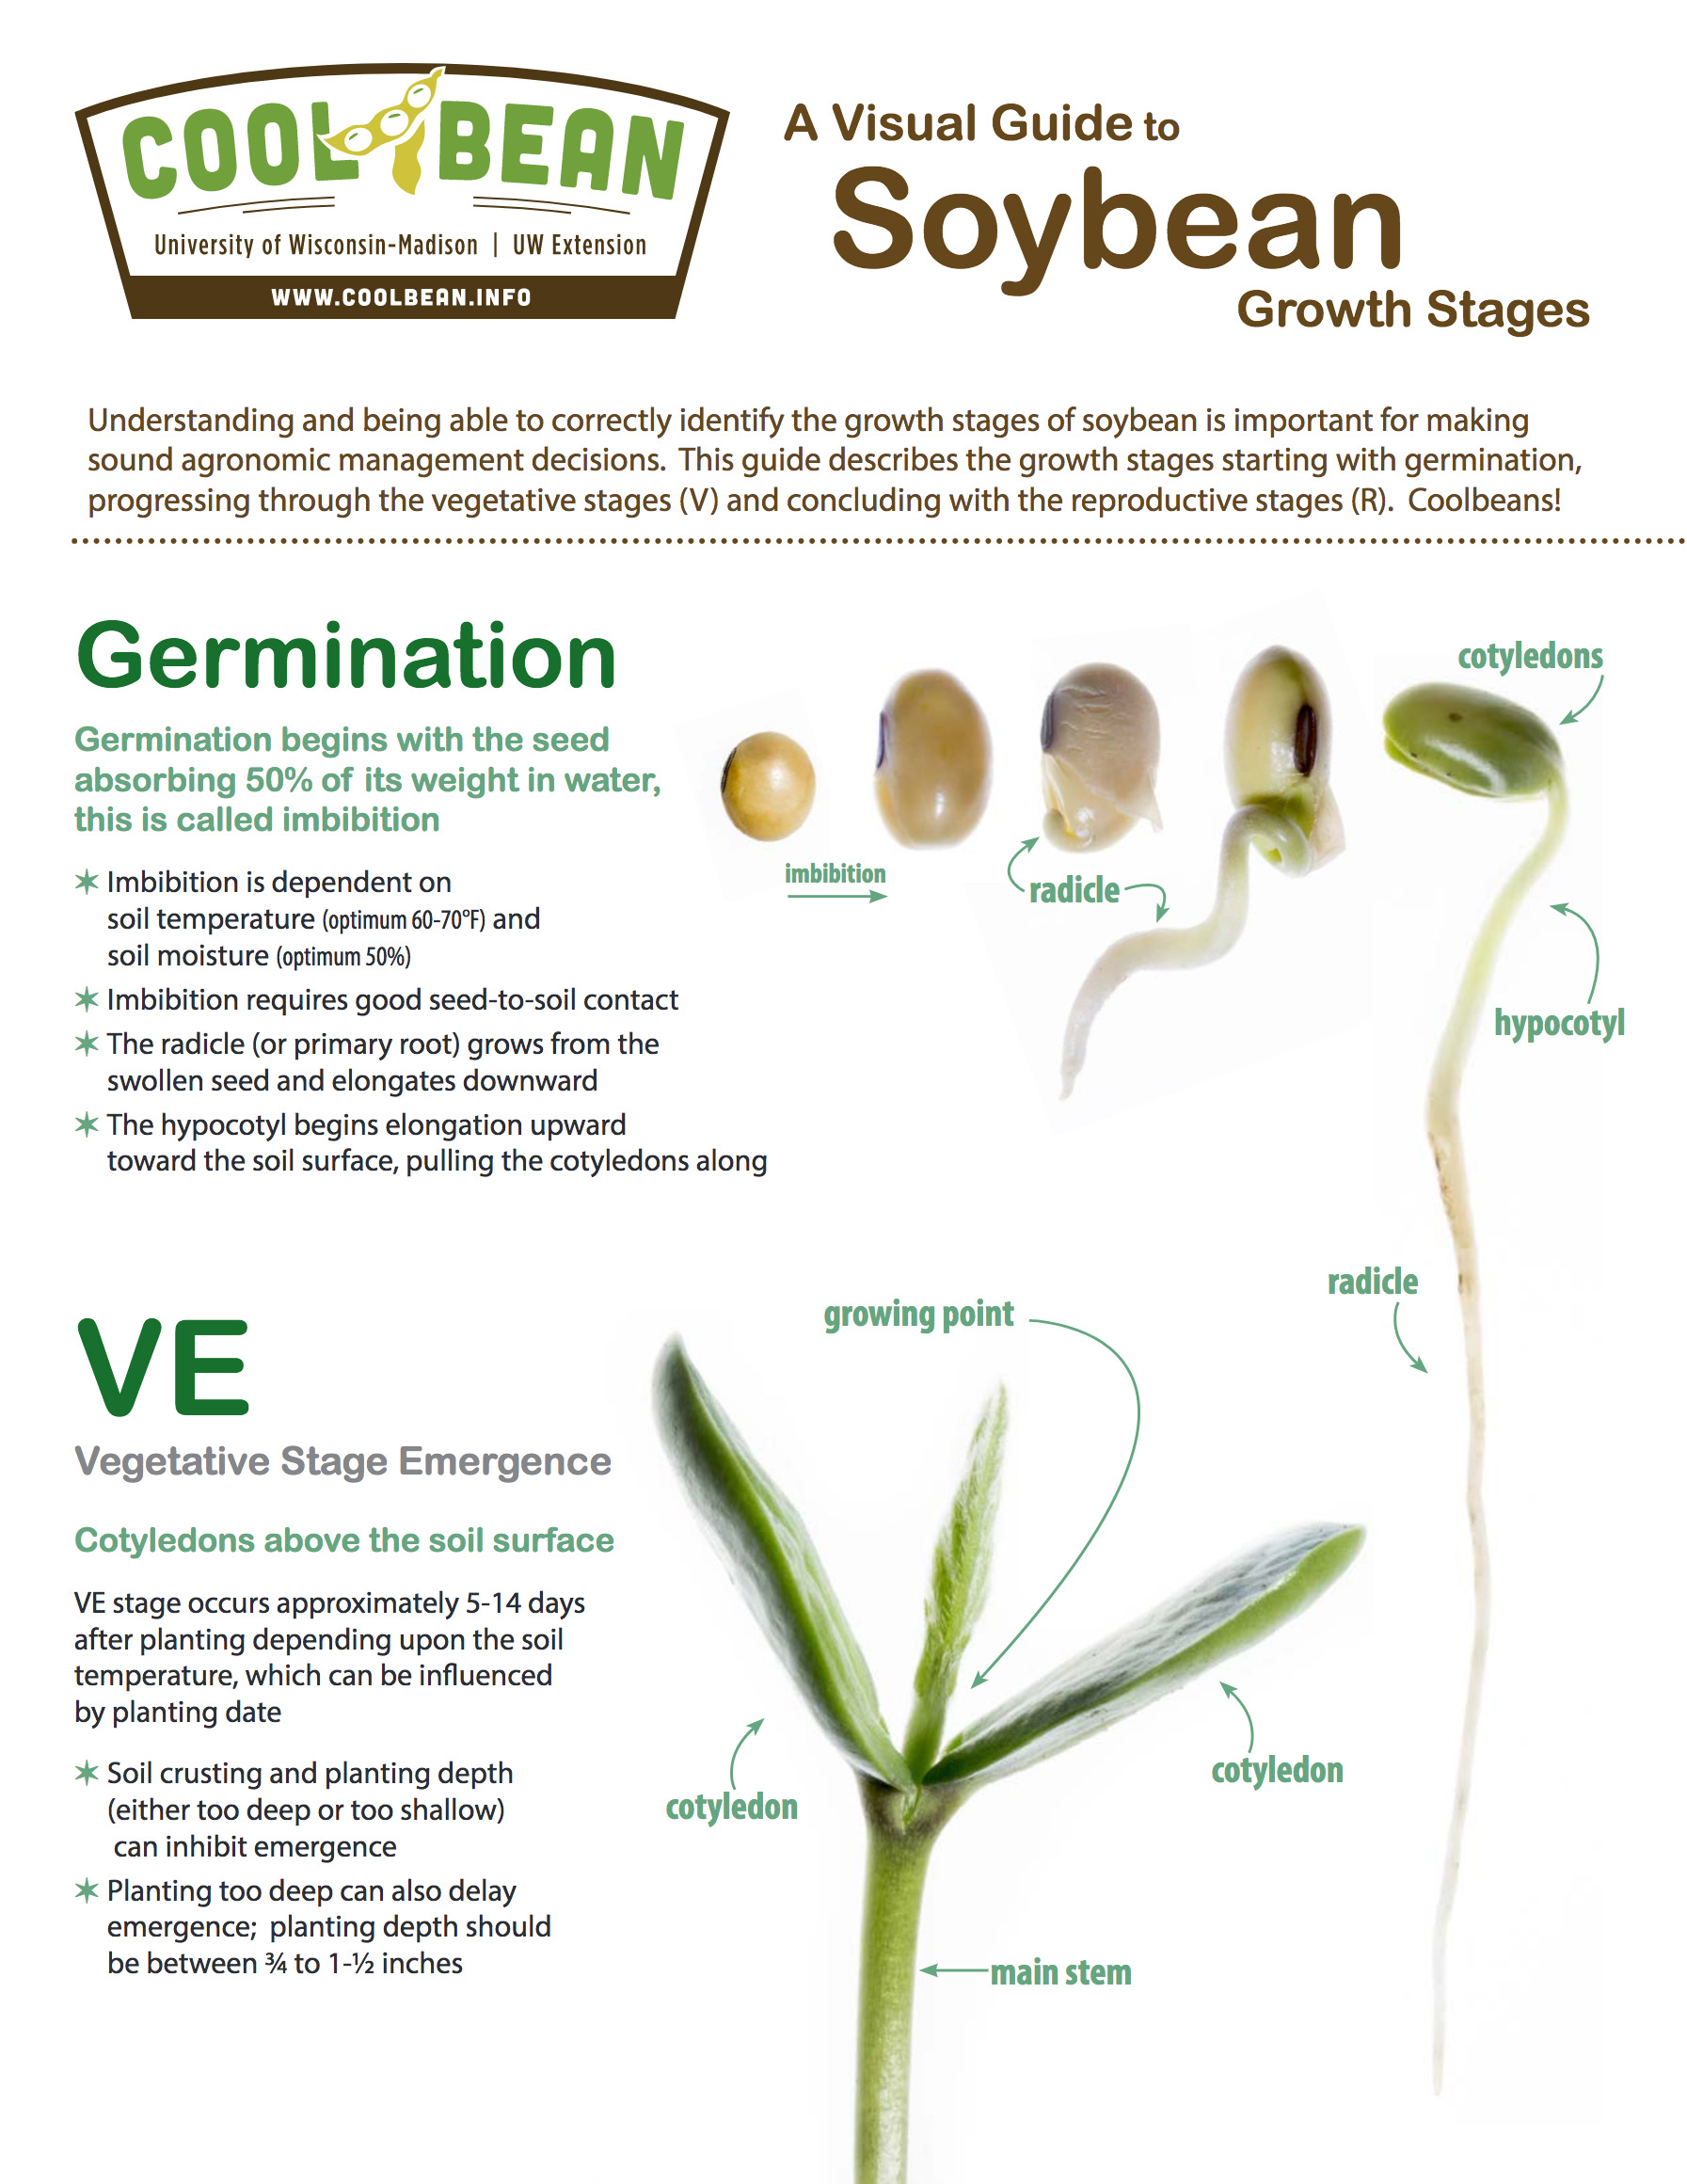 soybean-growth-stages